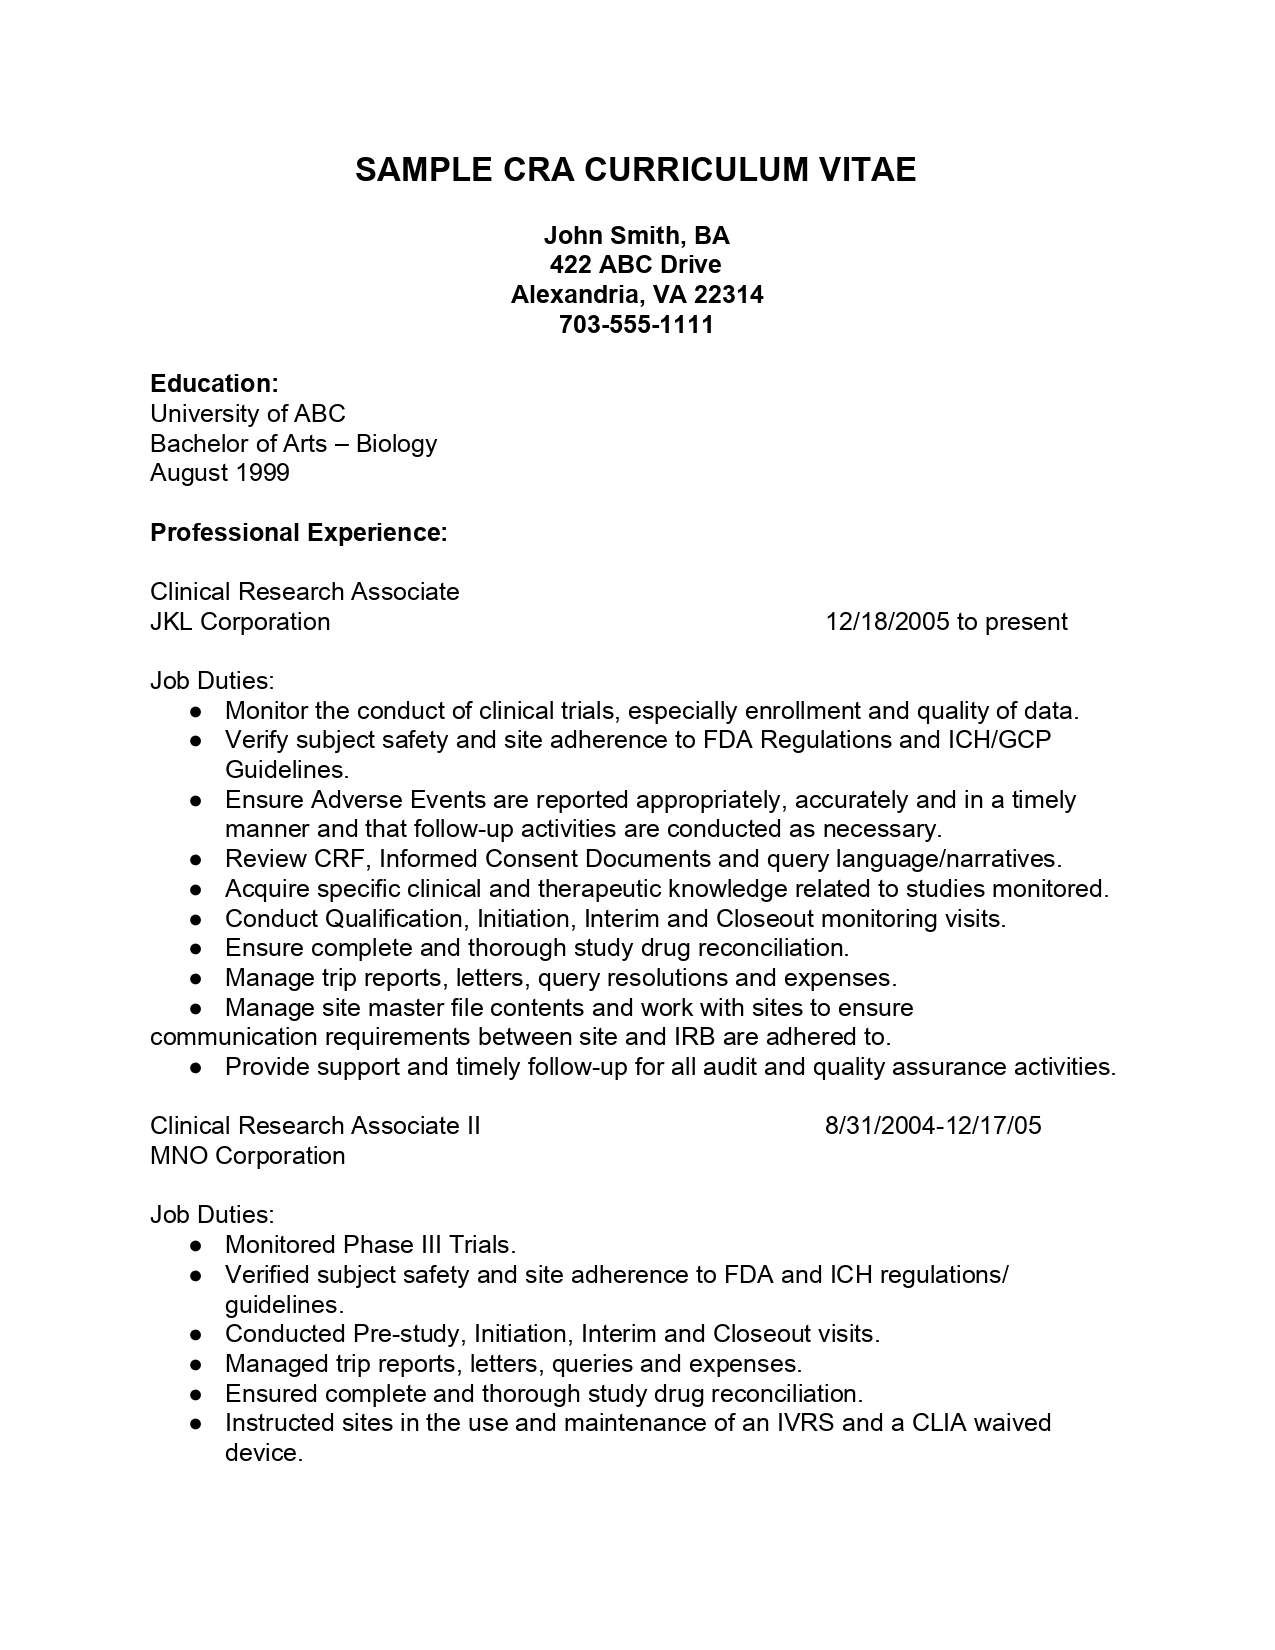 clinical research assistant resume google docs templates technical samples etl testing Resume Research Assistant Resume